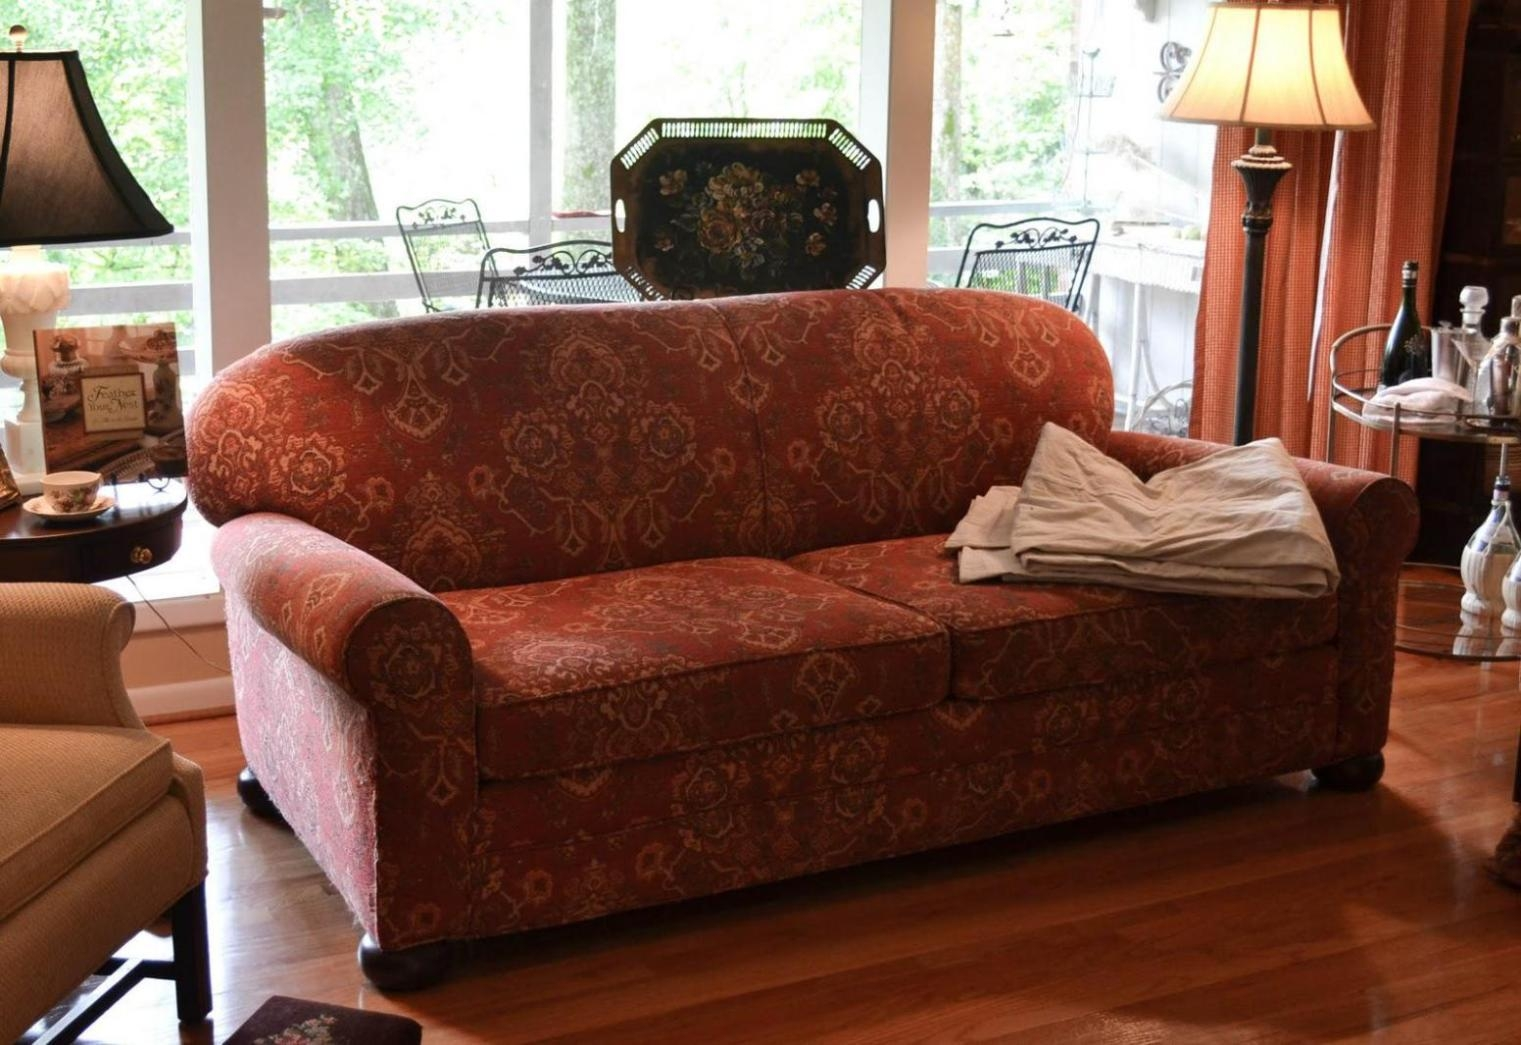 Loveseat Slipcover T Cushion : Doherty House – Contemporary For Loveseat Slipcovers T Cushion (Image 11 of 20)